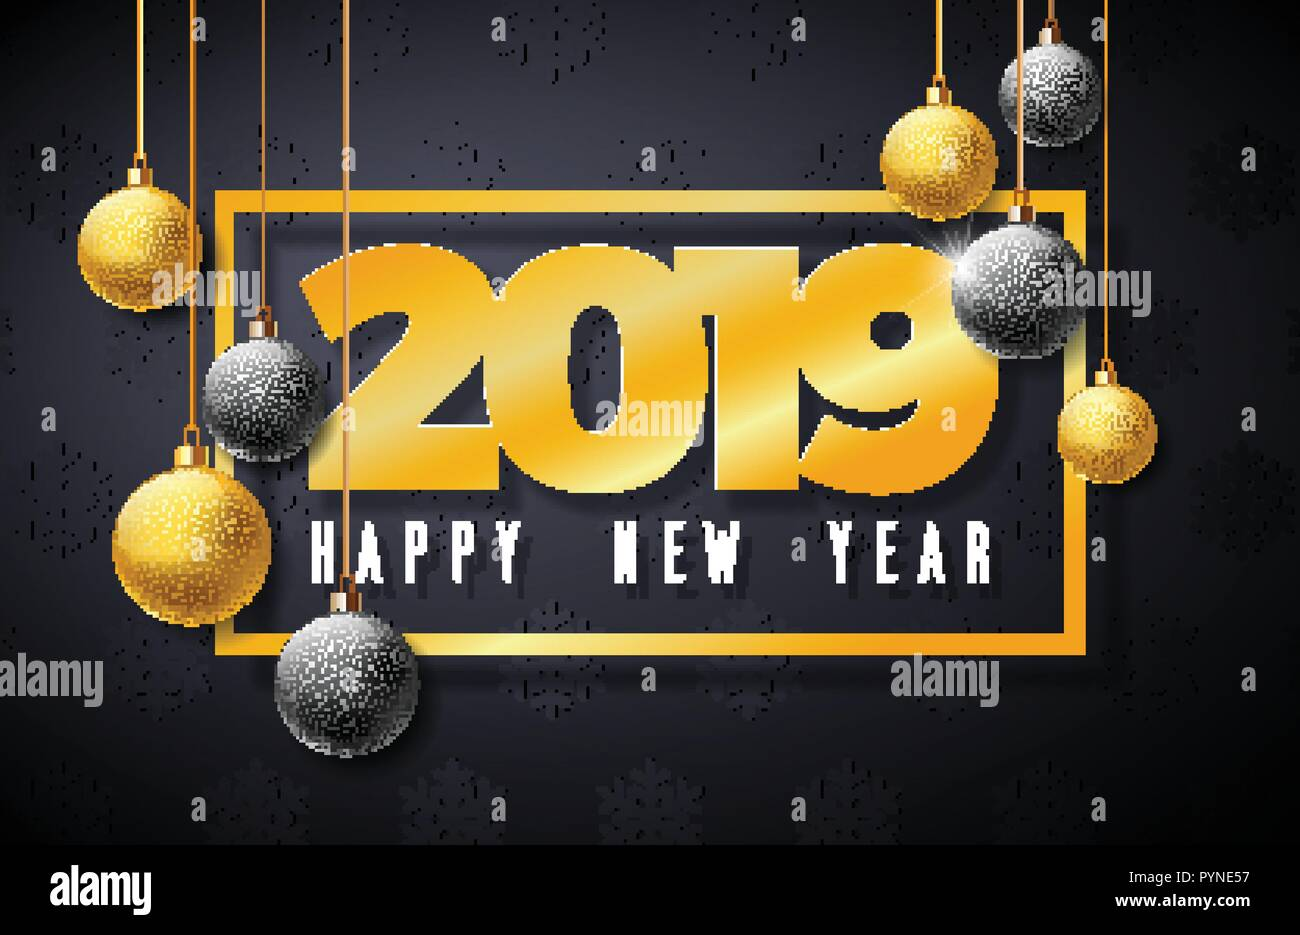 2019 happy new year illustration with gold number and christmas ball on black background holiday design for flyer greeting card banner